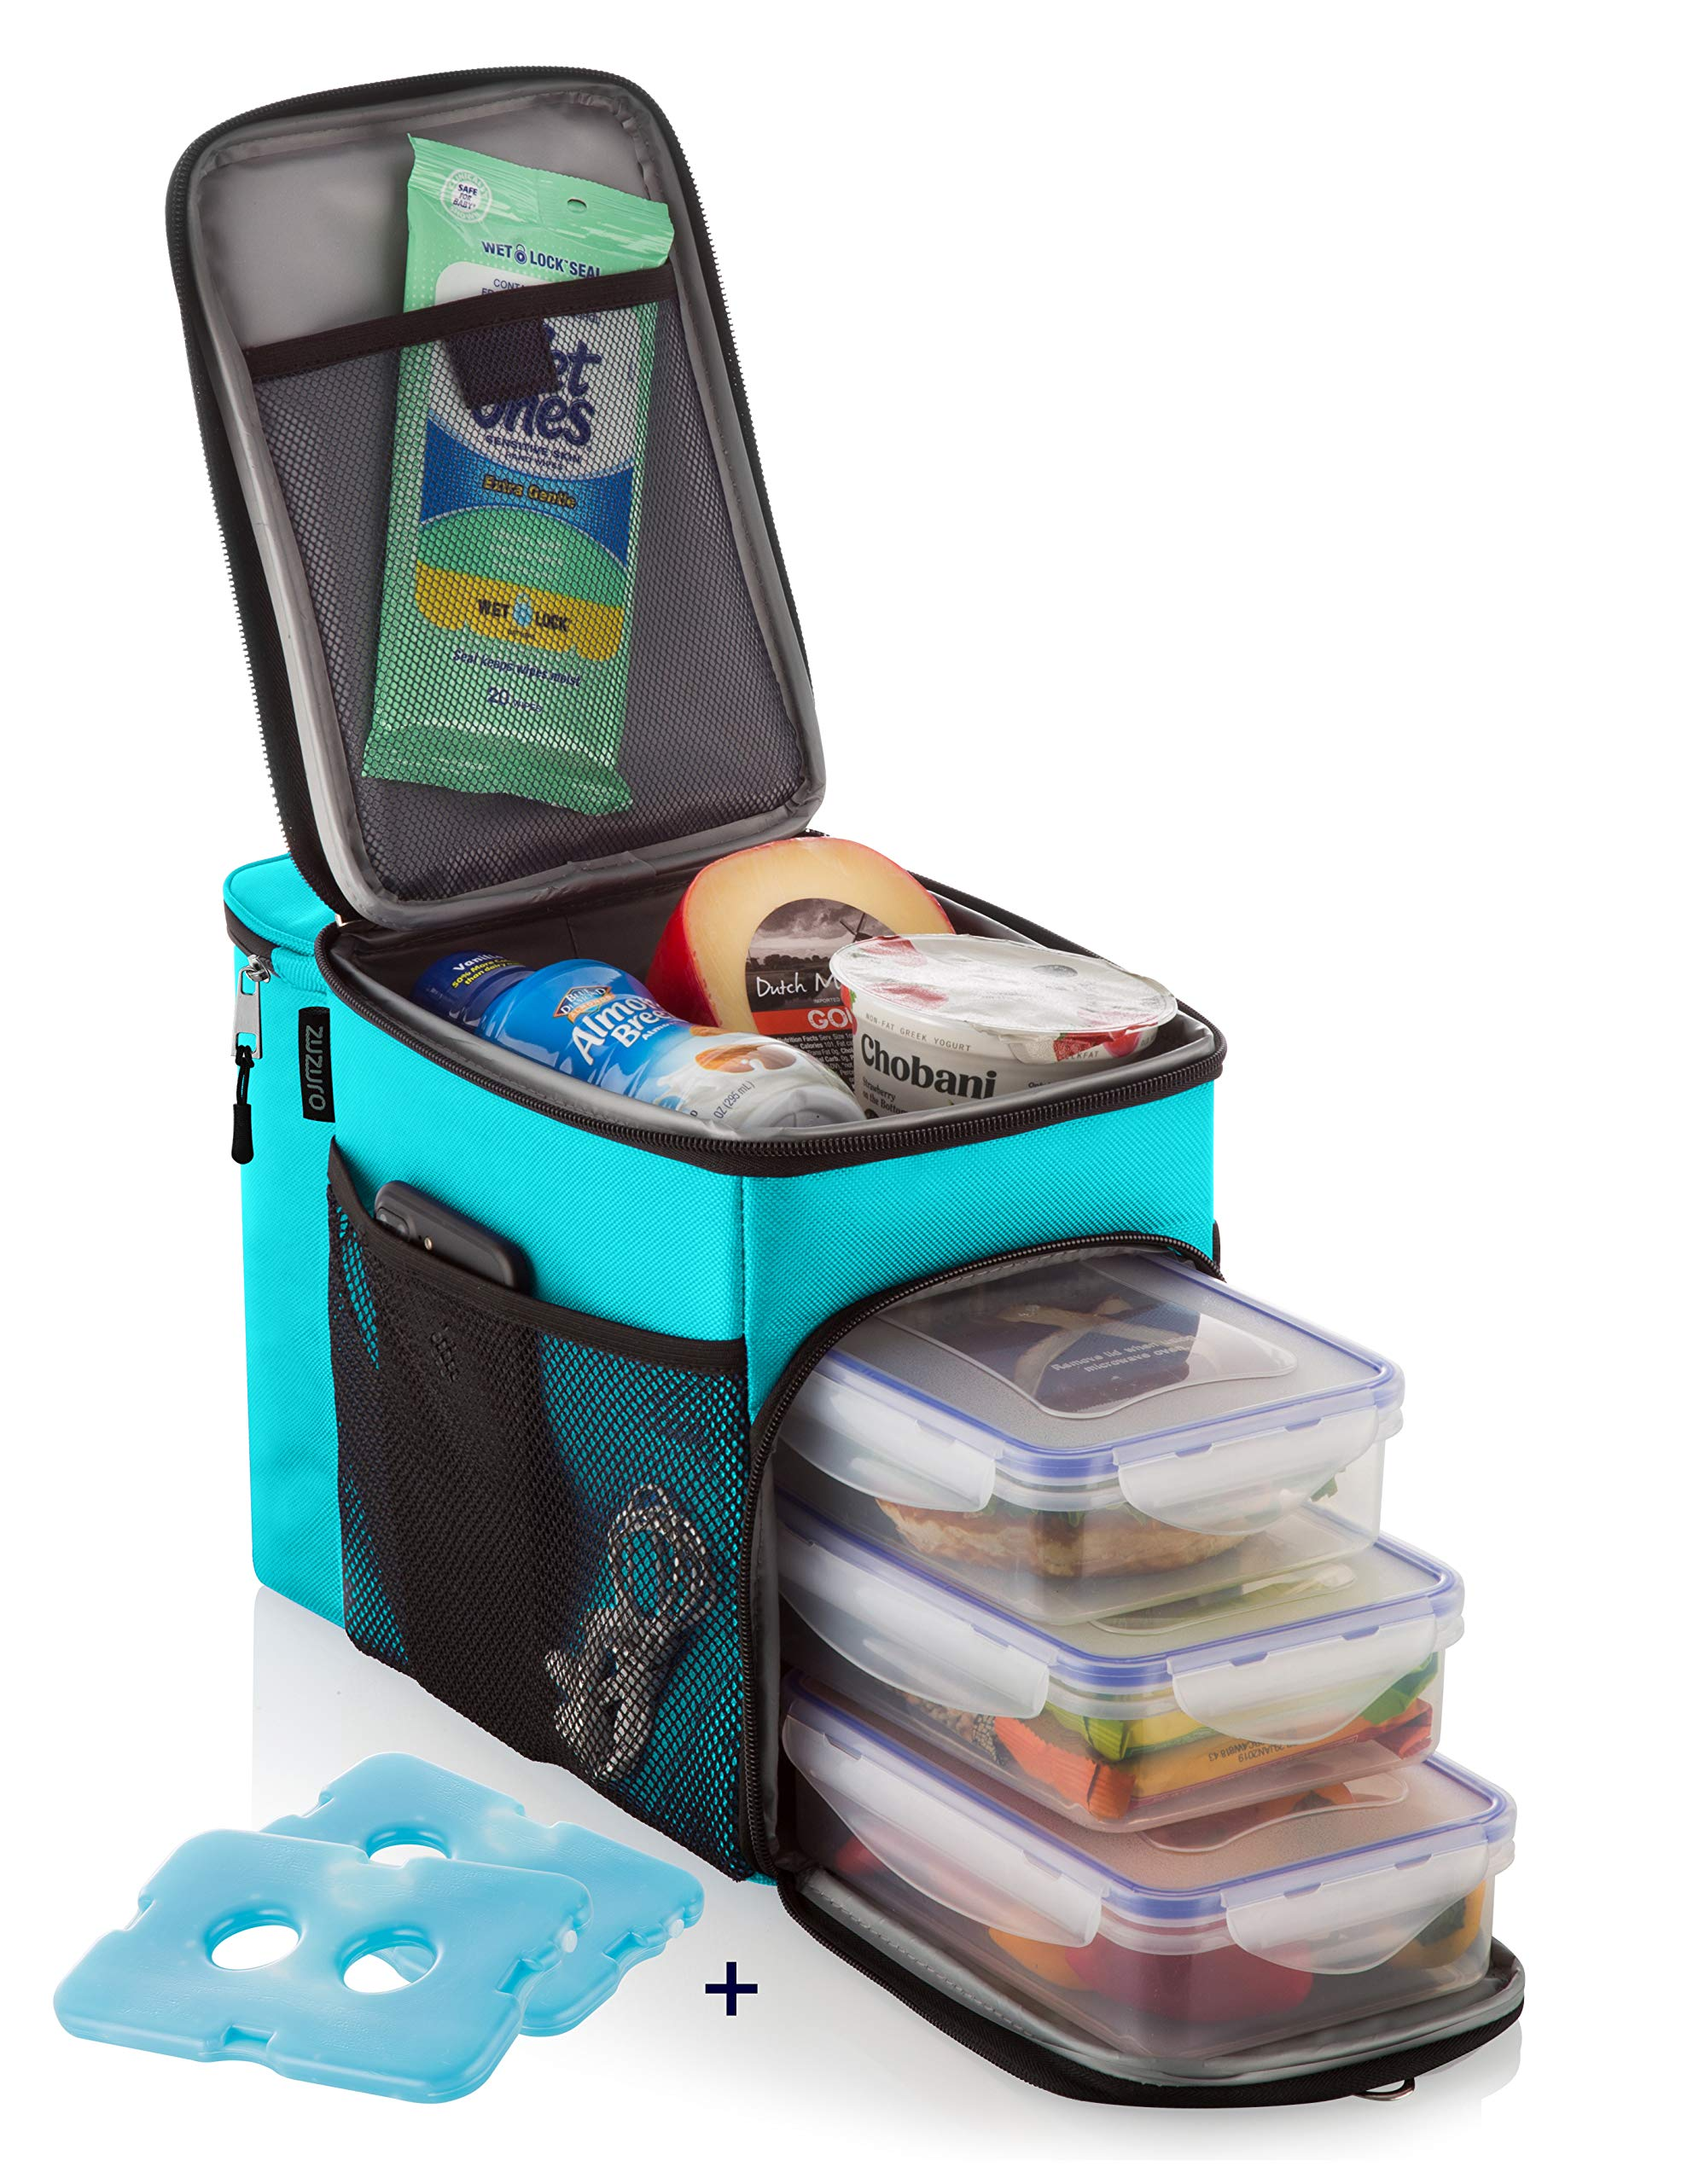 ZUZURO Lunch Bag Insulated Cooler Lunch Box w/ 3 Compartment - Heavy-Duty Fabric, Strong SBS Zippers - Includes 3 Meal Prep Lunch box Containers + 2 Ice Packs. For Men Women Adults (Turquoise) by Zuzuro